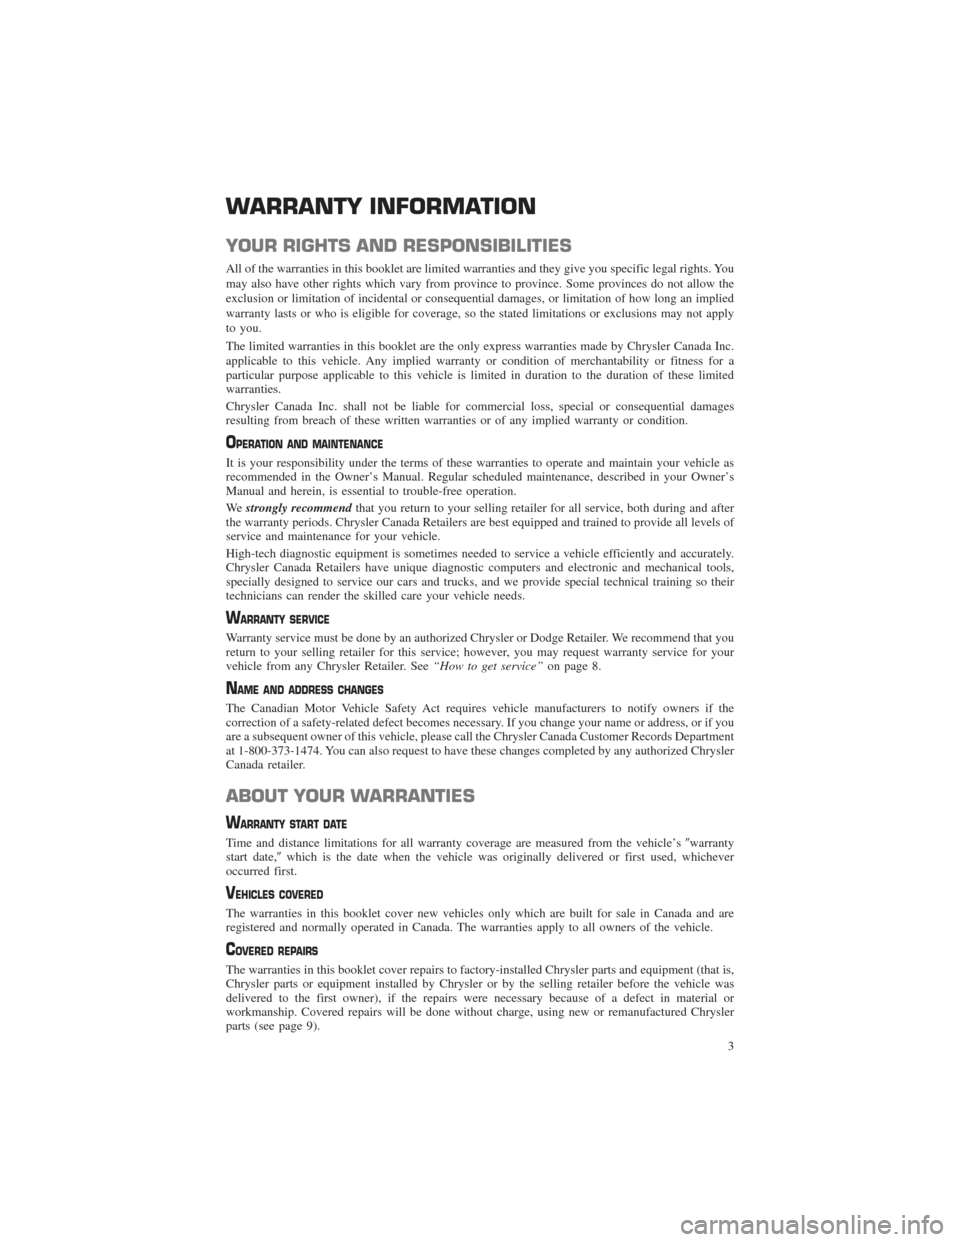 CHRYSLER 200 2015 2.G Warranty Booklet WARRANTY INFORMATION YOUR RIGHTS AND RESPONSIBILITIES All of the warranties in this booklet are limited warranties and they give you specific legal rights. You may also have other rights which vary fr